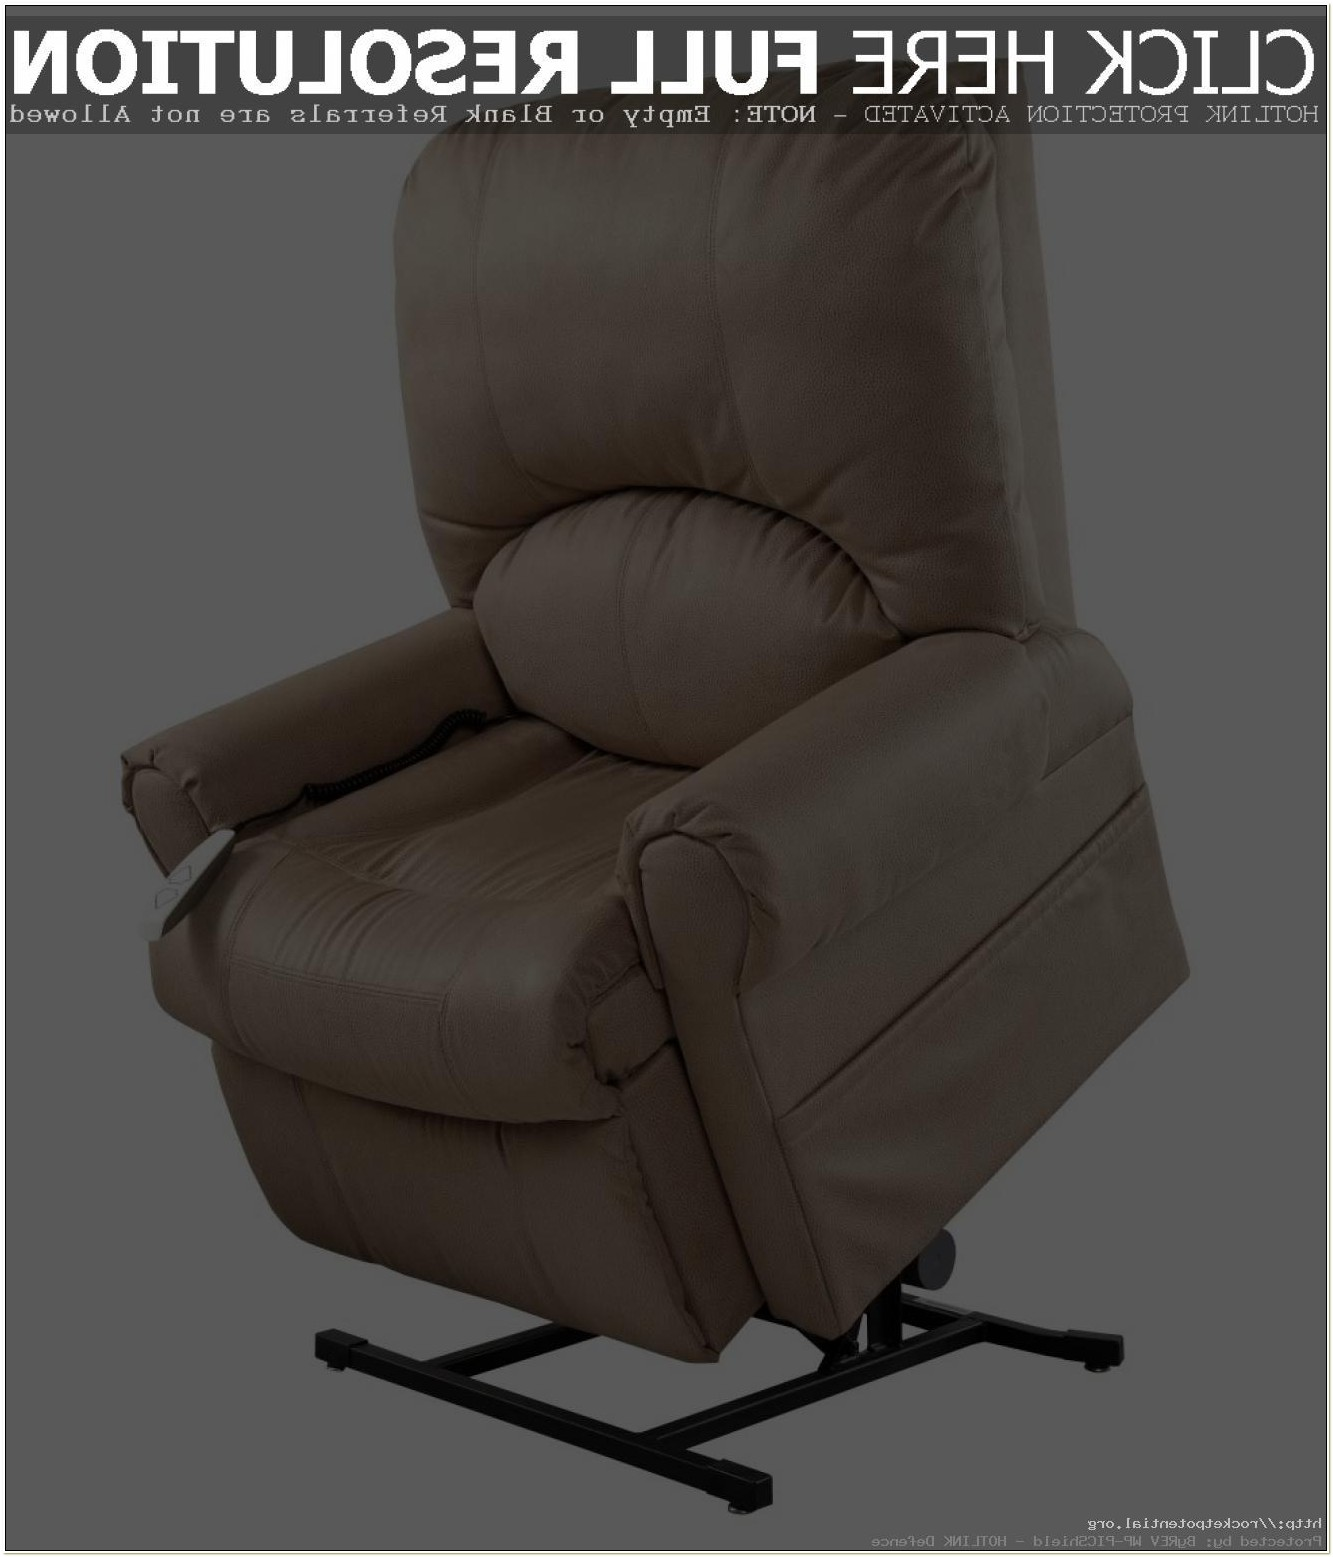 Medicare Reimbursement Power Lift Chair